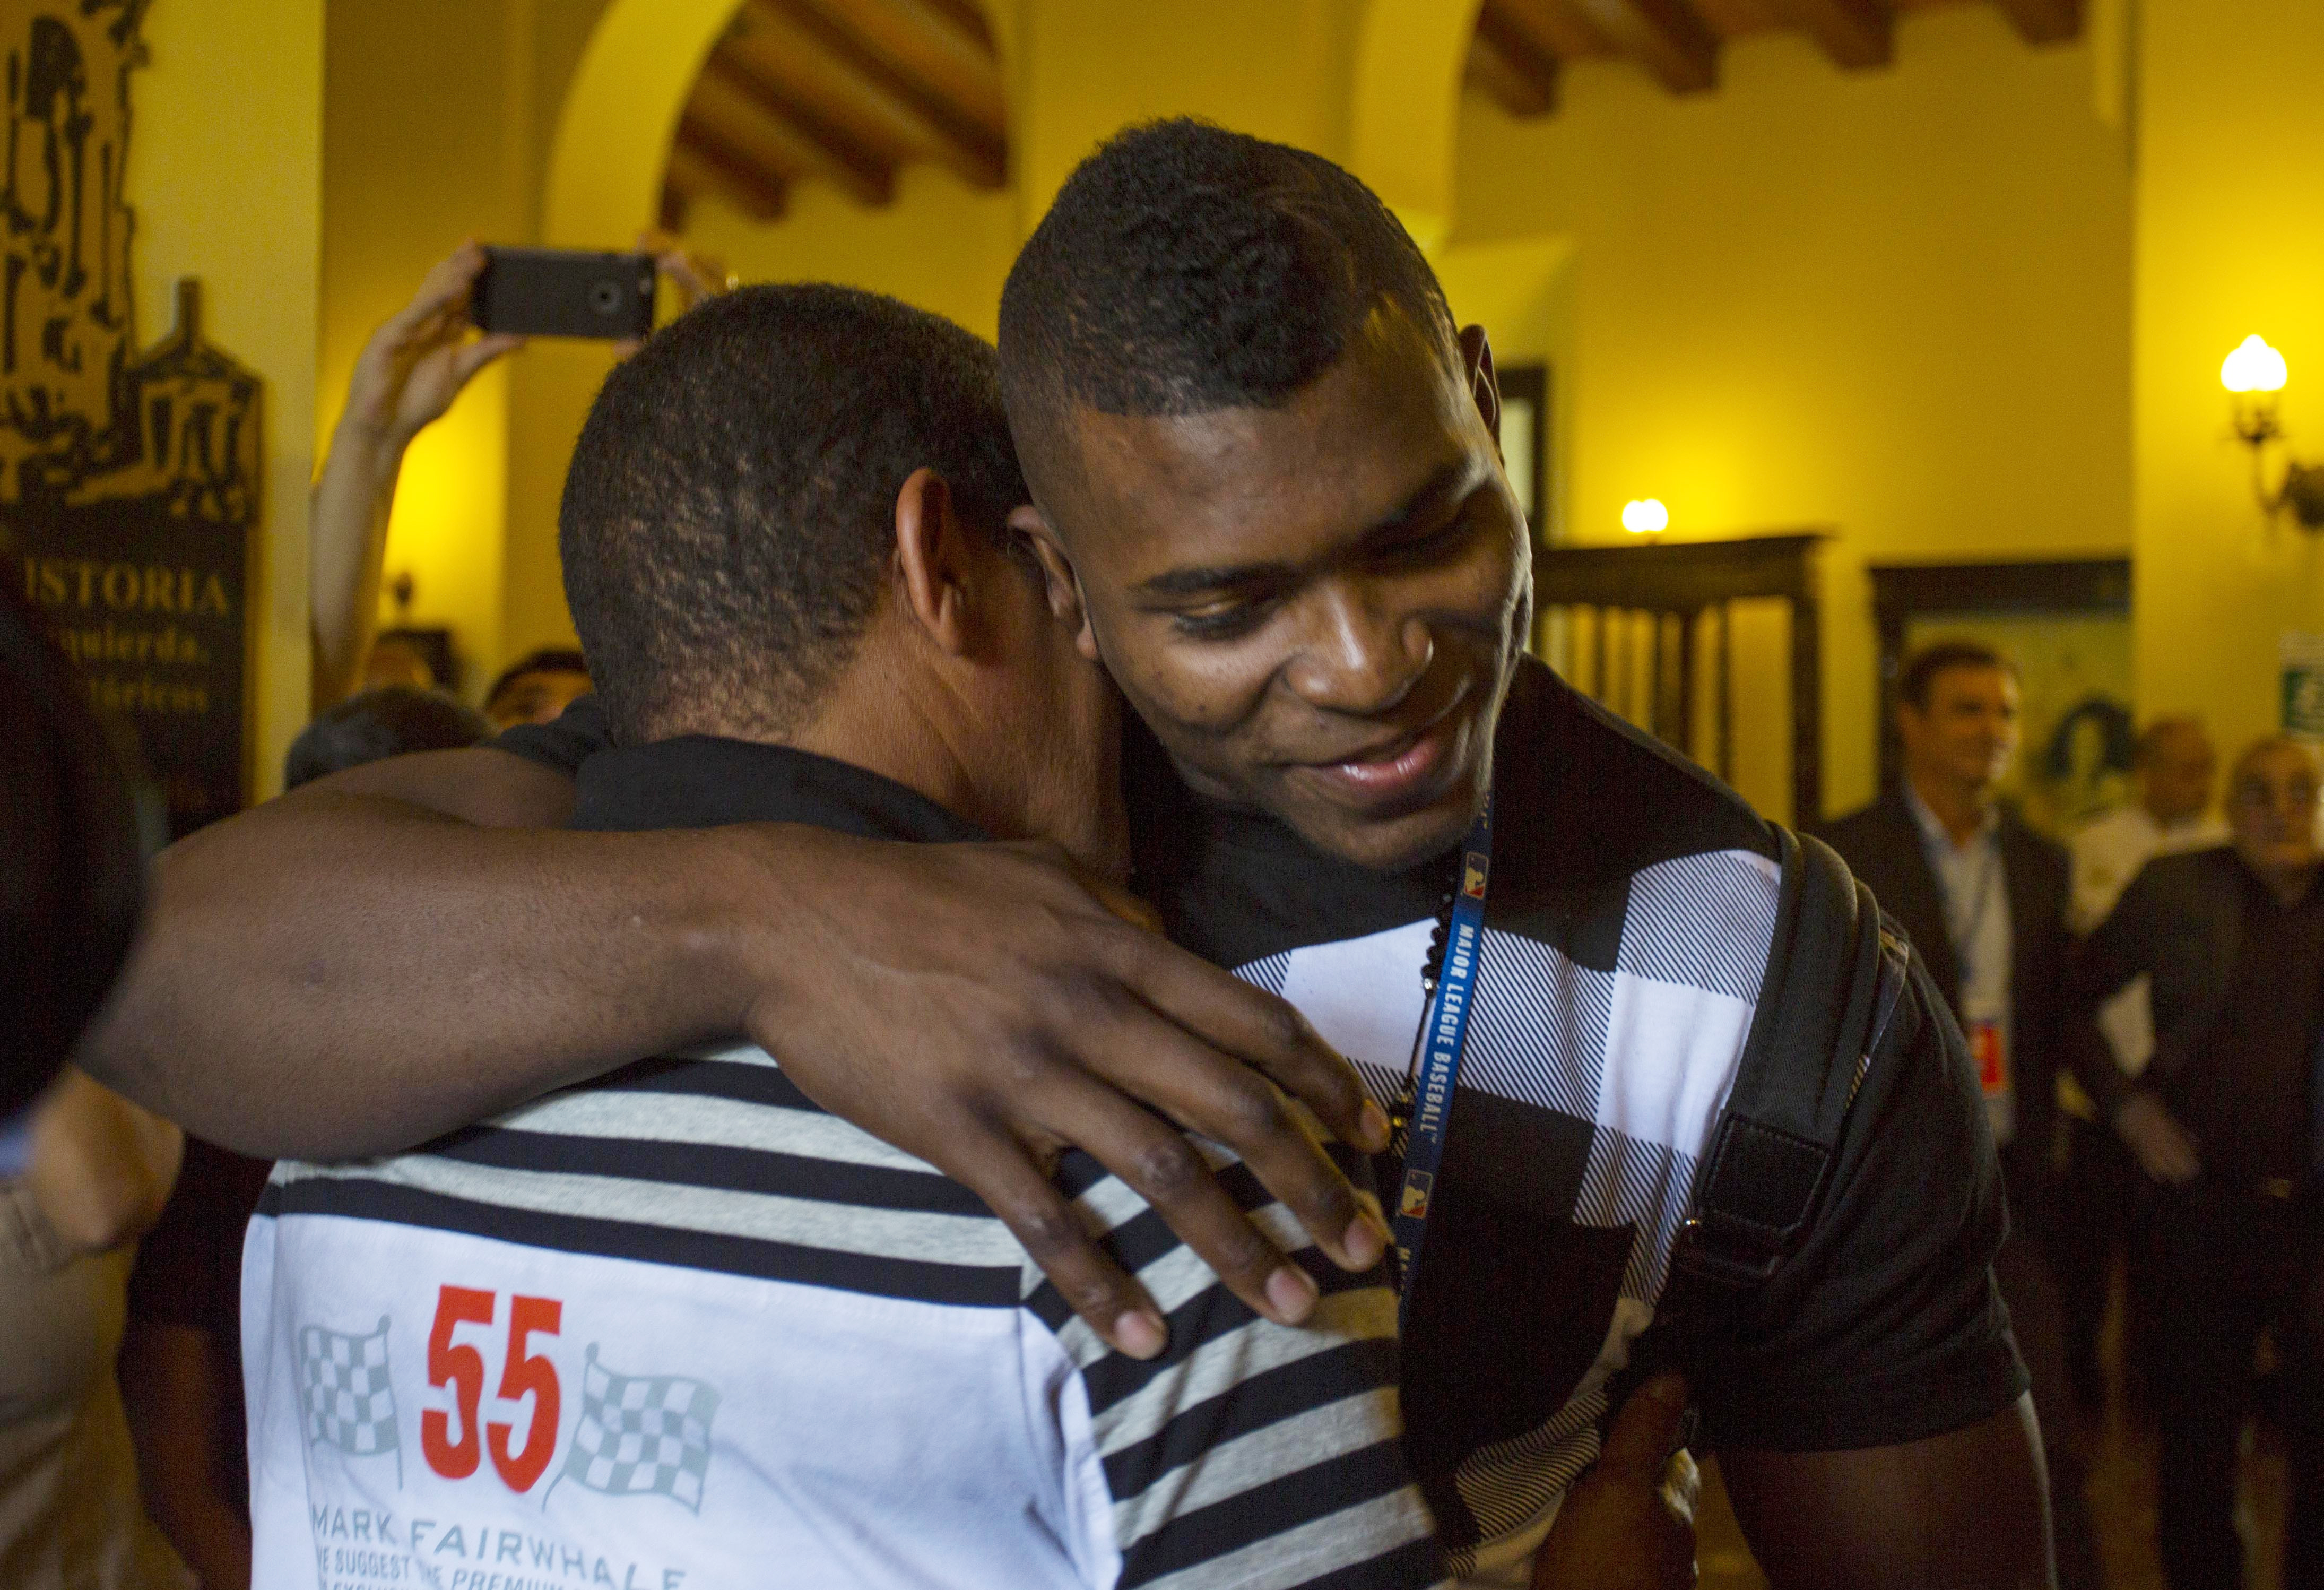 Los Angeles Dodgers outfielder Yasiel Puig, right, hugs his former coach Juan Arechavaleta as he arrives to Hotel Nacional in Havana, Cuba, Tuesday, Dec. 15, 2015. A lineup of Cuban baseball superstars including some of the most famous defectors in recent